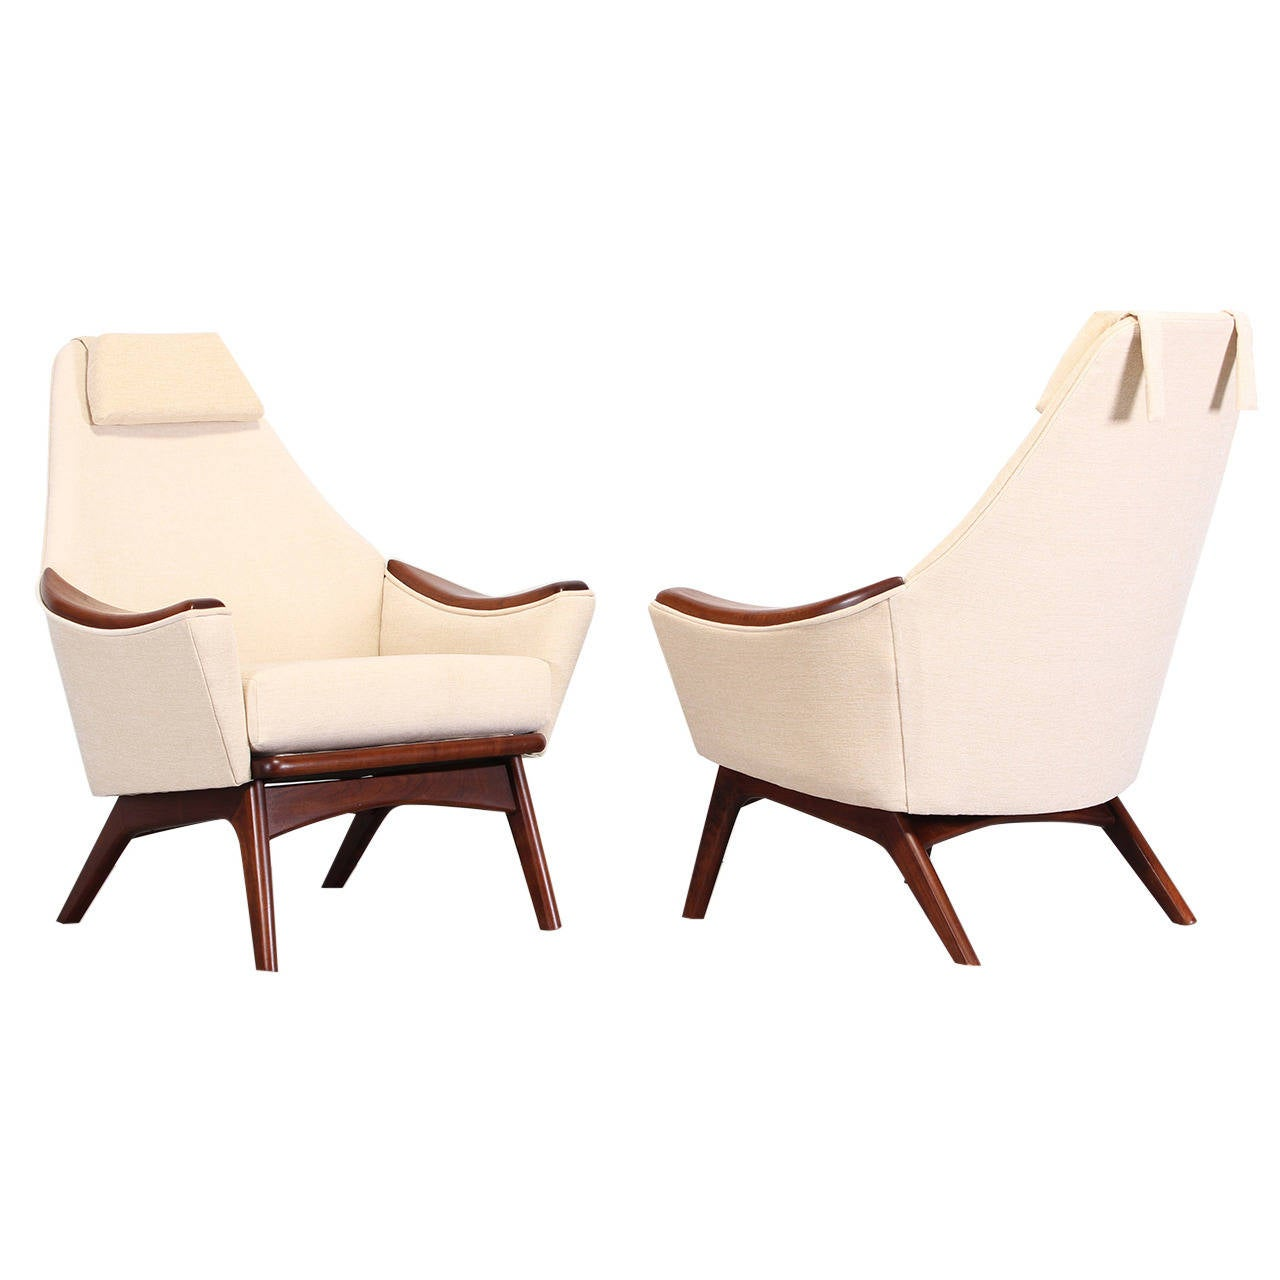 adrian pearsall chair drive medical bathroom safety shower tub bench pair of lounge chairs model 1806 c 1960